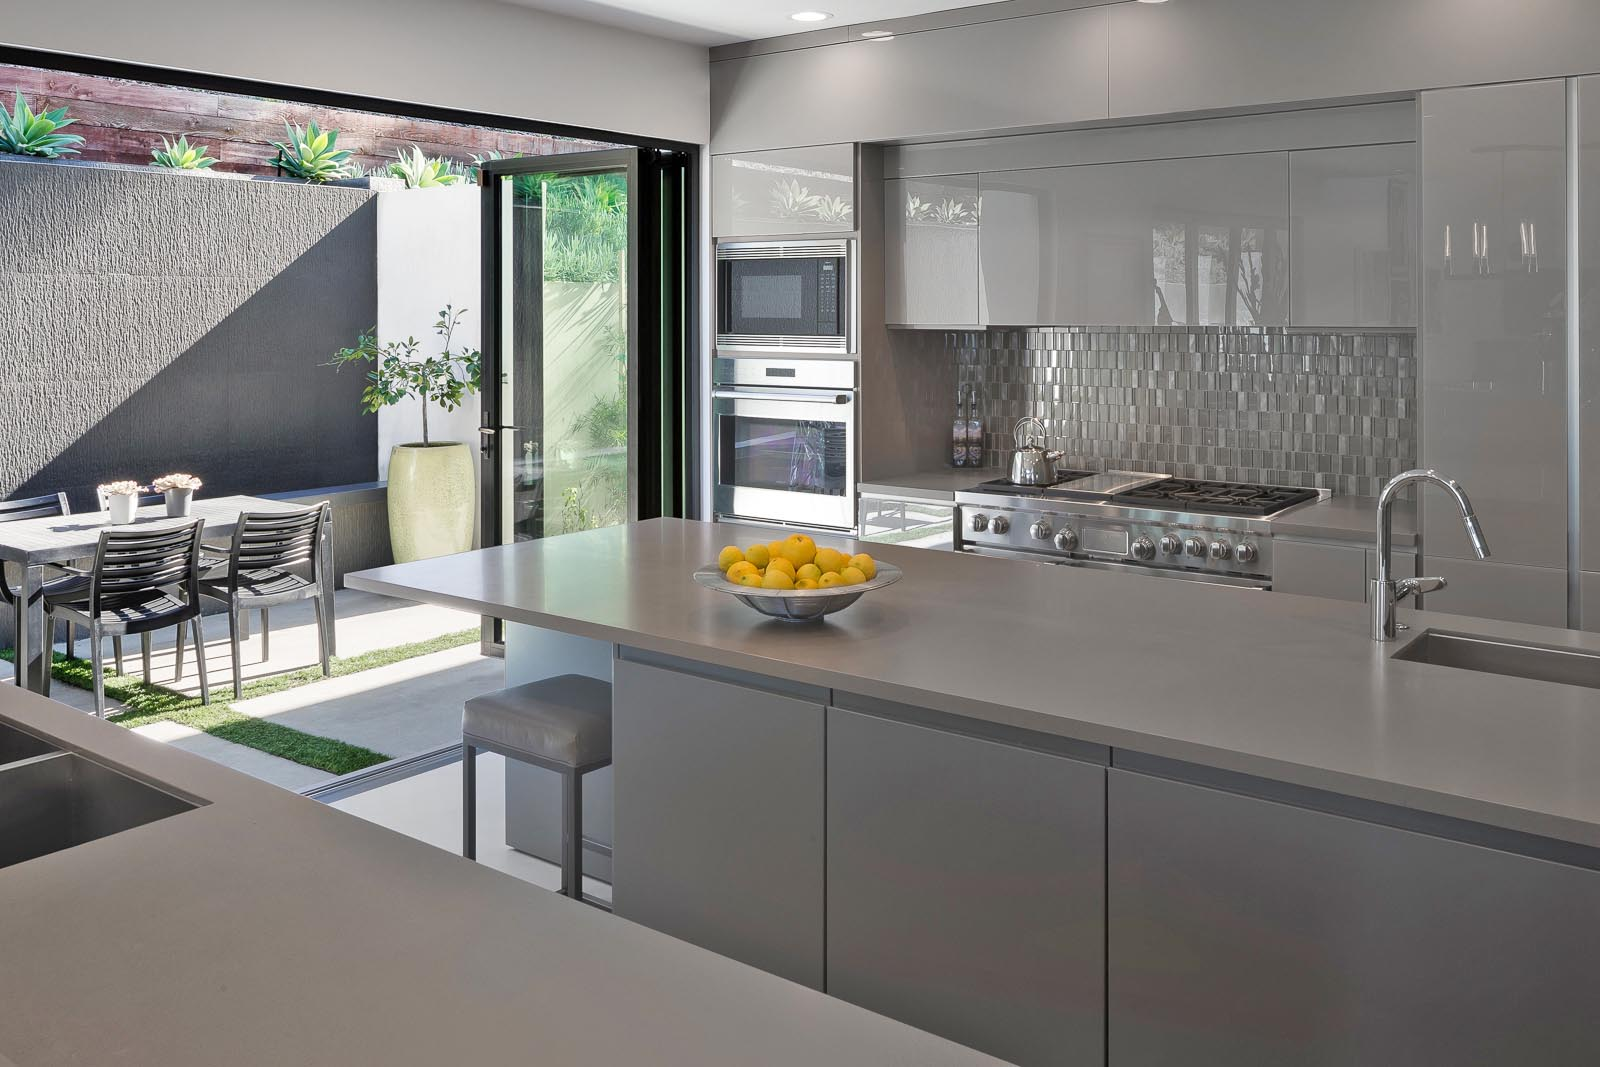 ... An Innovative Modular Outdoor Kitchen By Brown Jordan Outdoor Kitchens  That Starts At $33,000. Other Exhibitors Include Able And Baker, The  Concrete ...